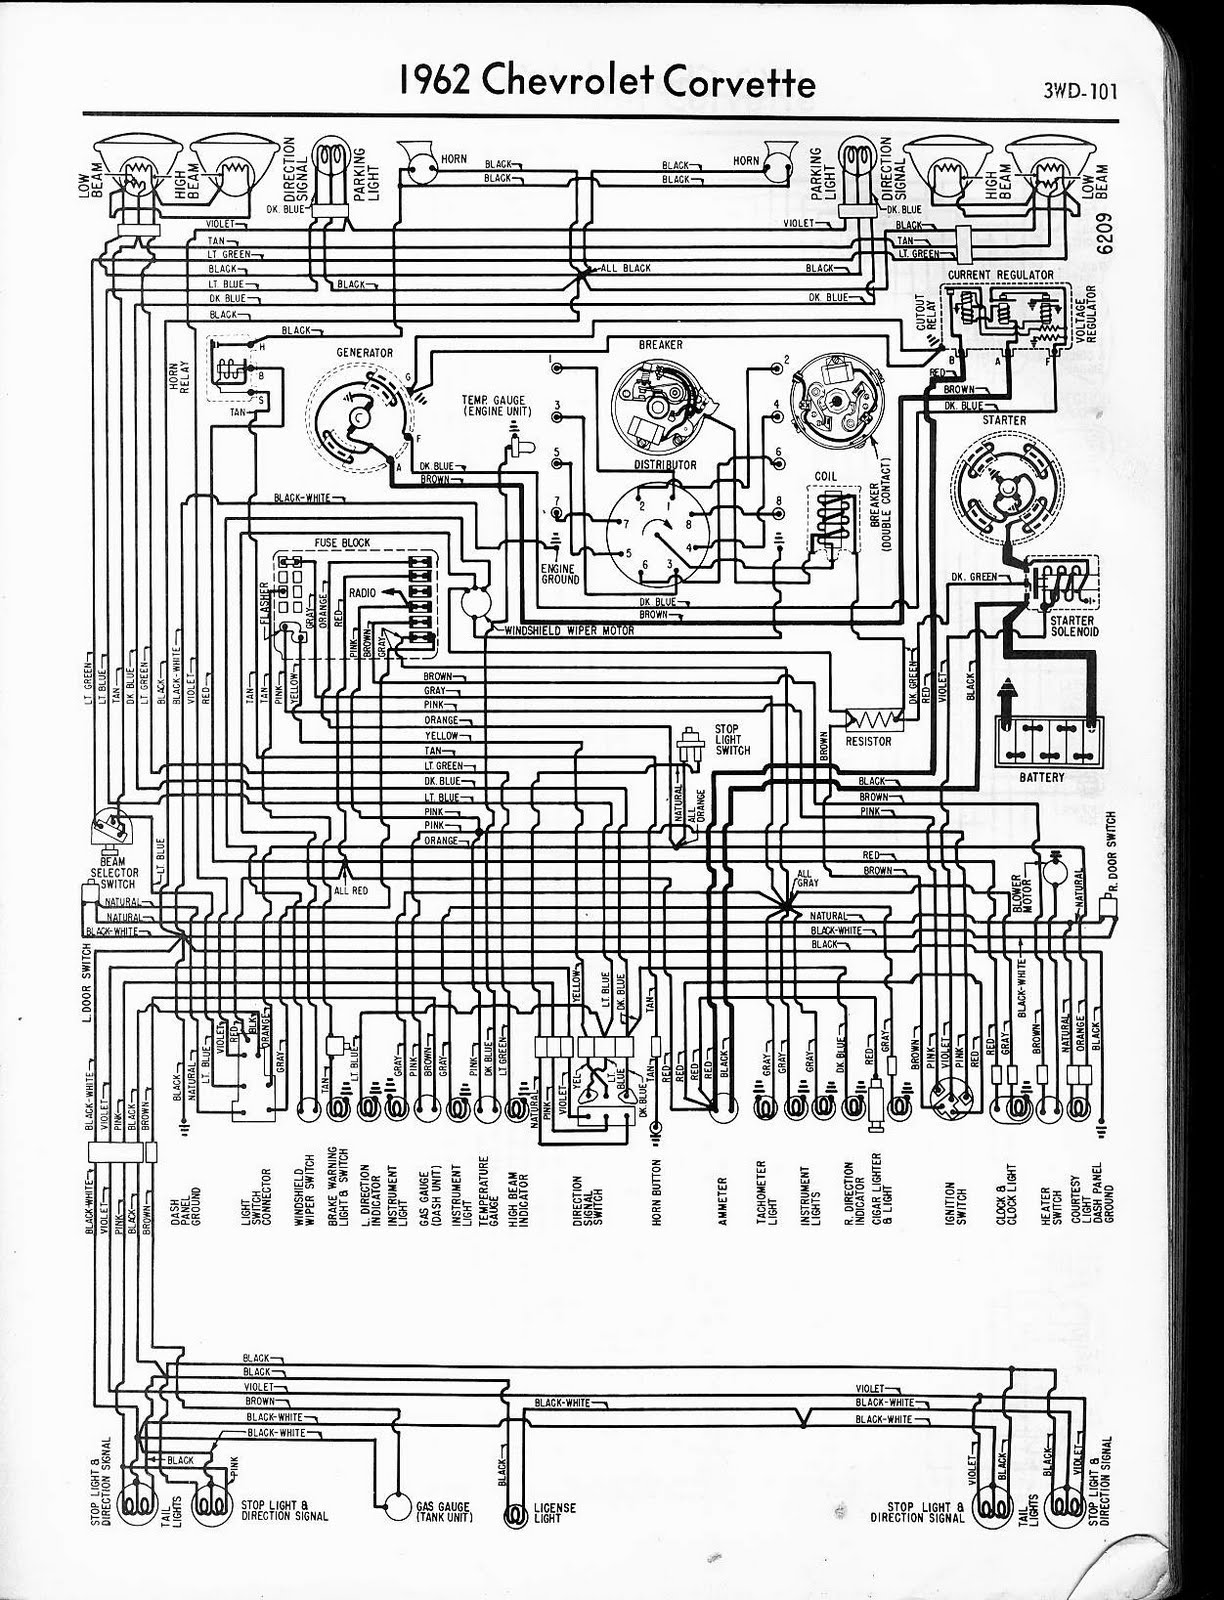 1965 corvette fuse panel diagram [ 1224 x 1600 Pixel ]